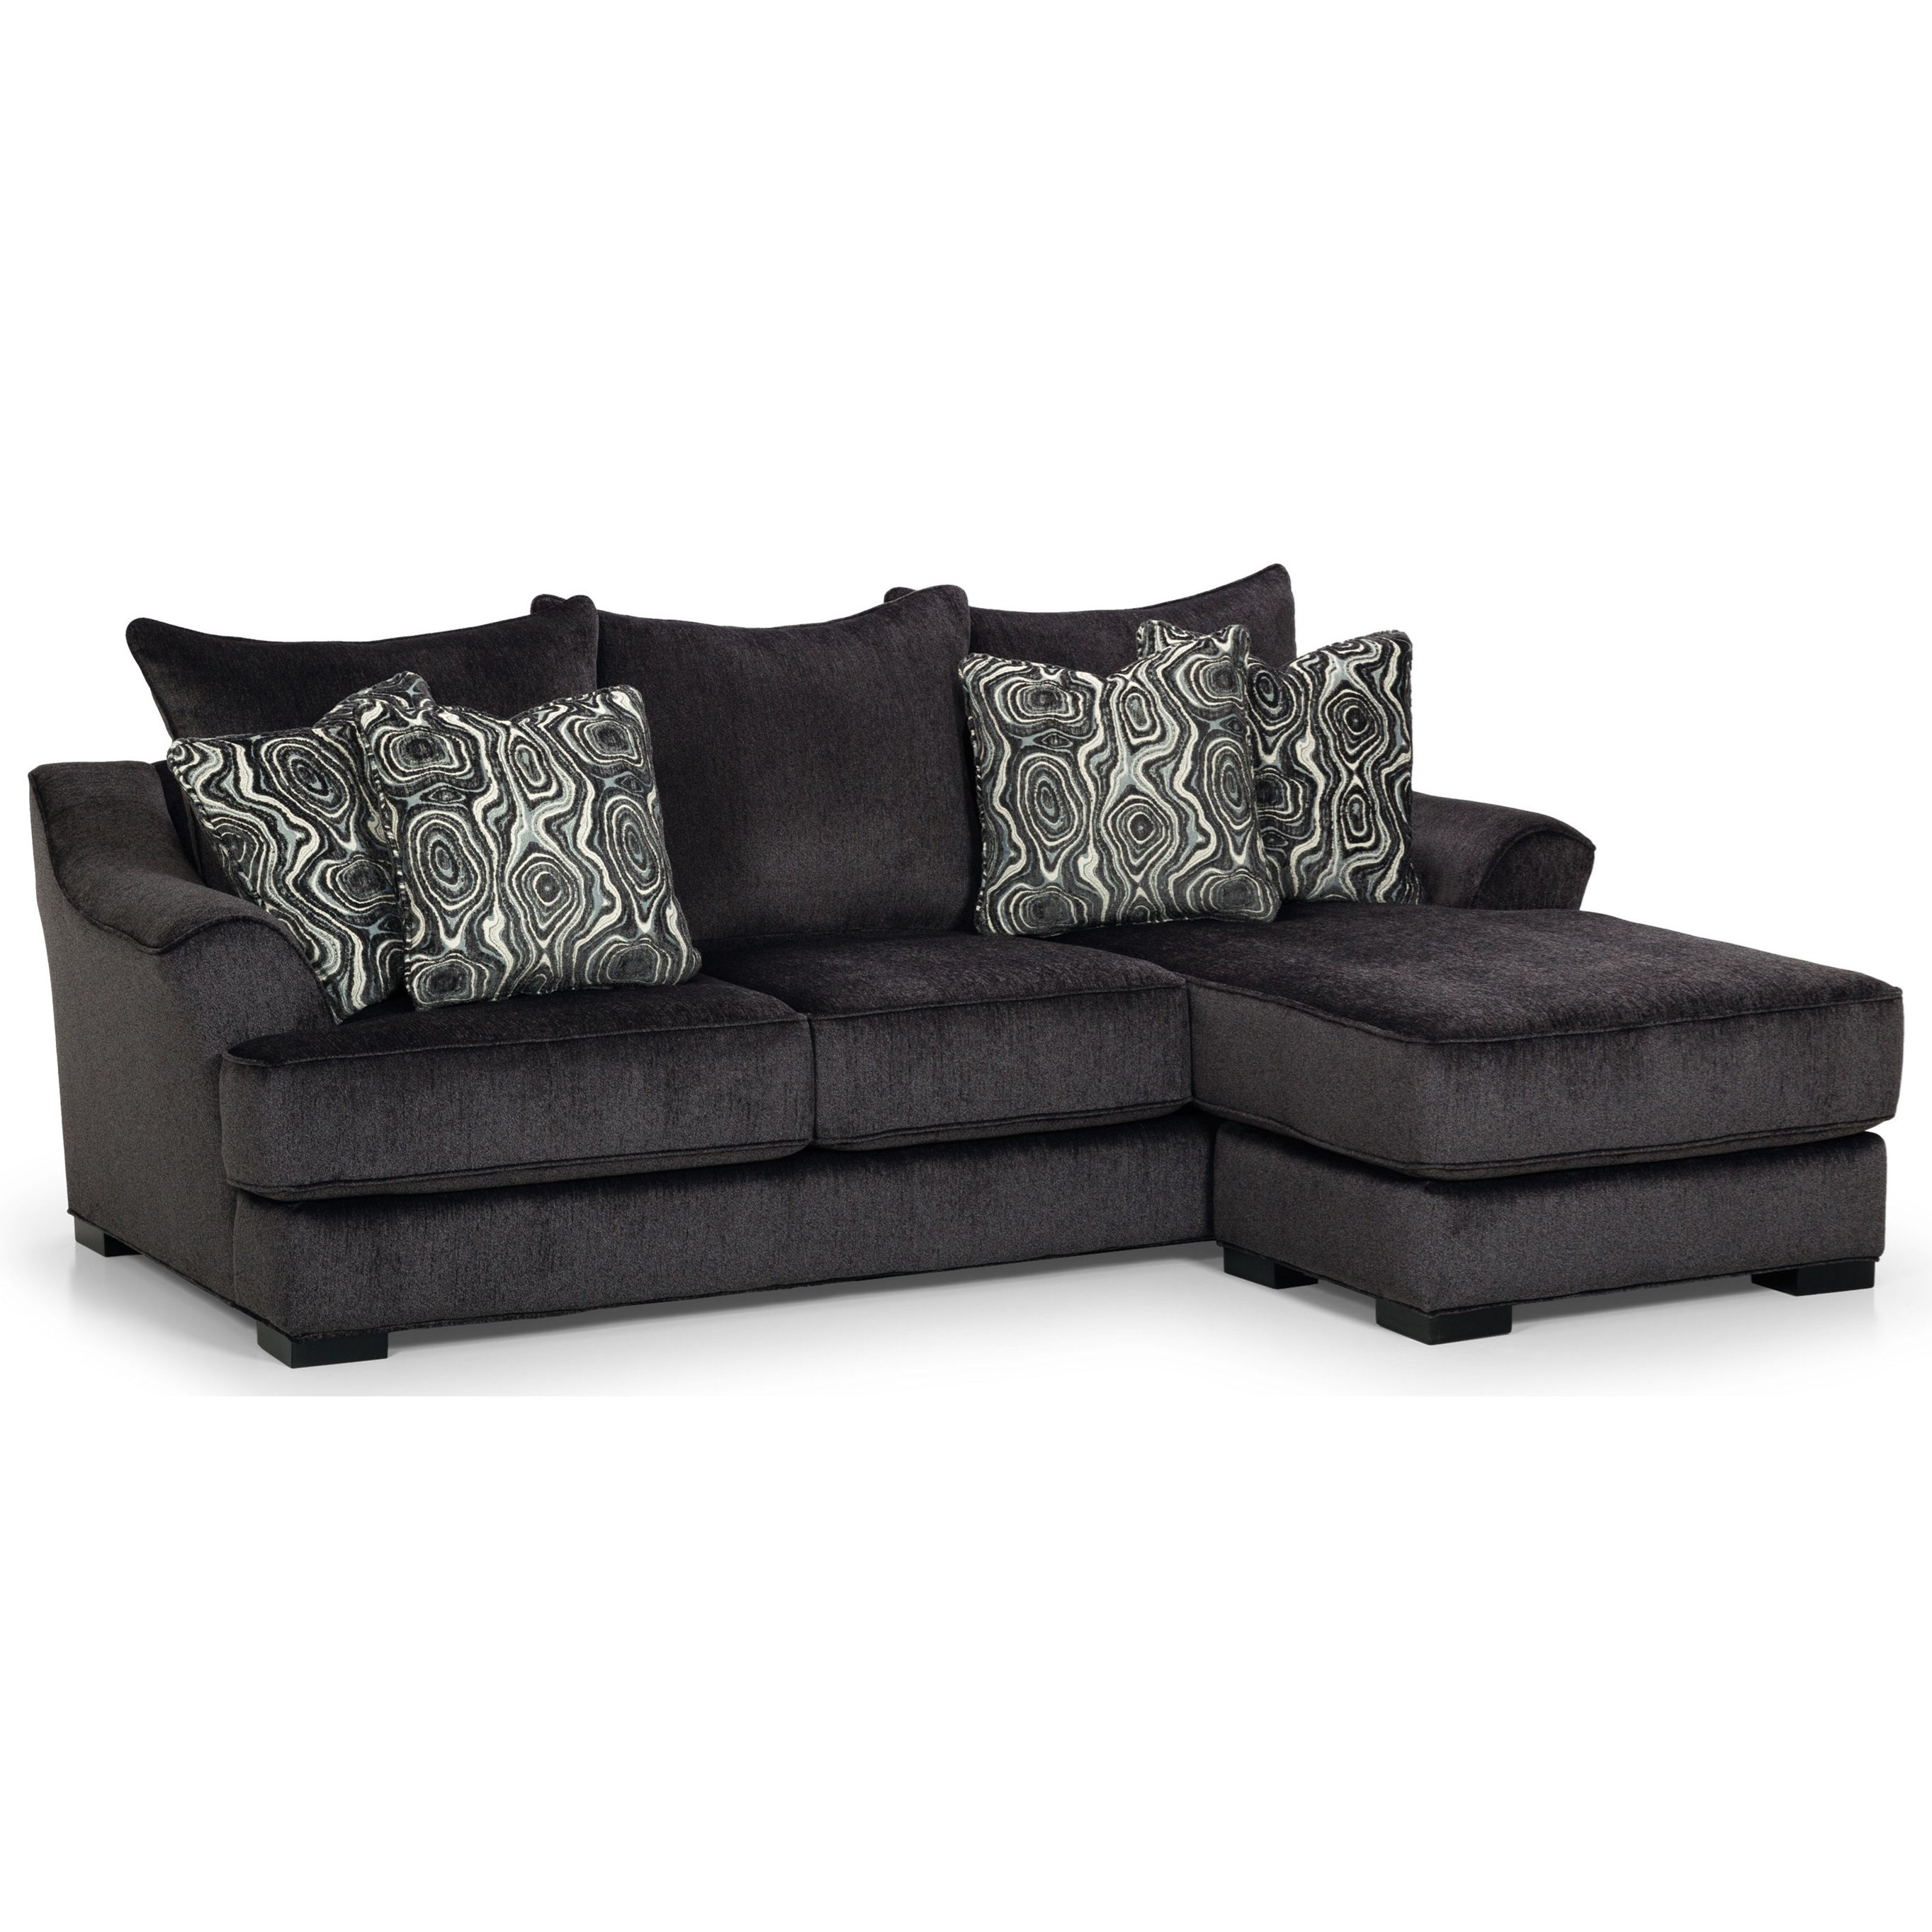 474 Sofa by Stanton at Wilson's Furniture